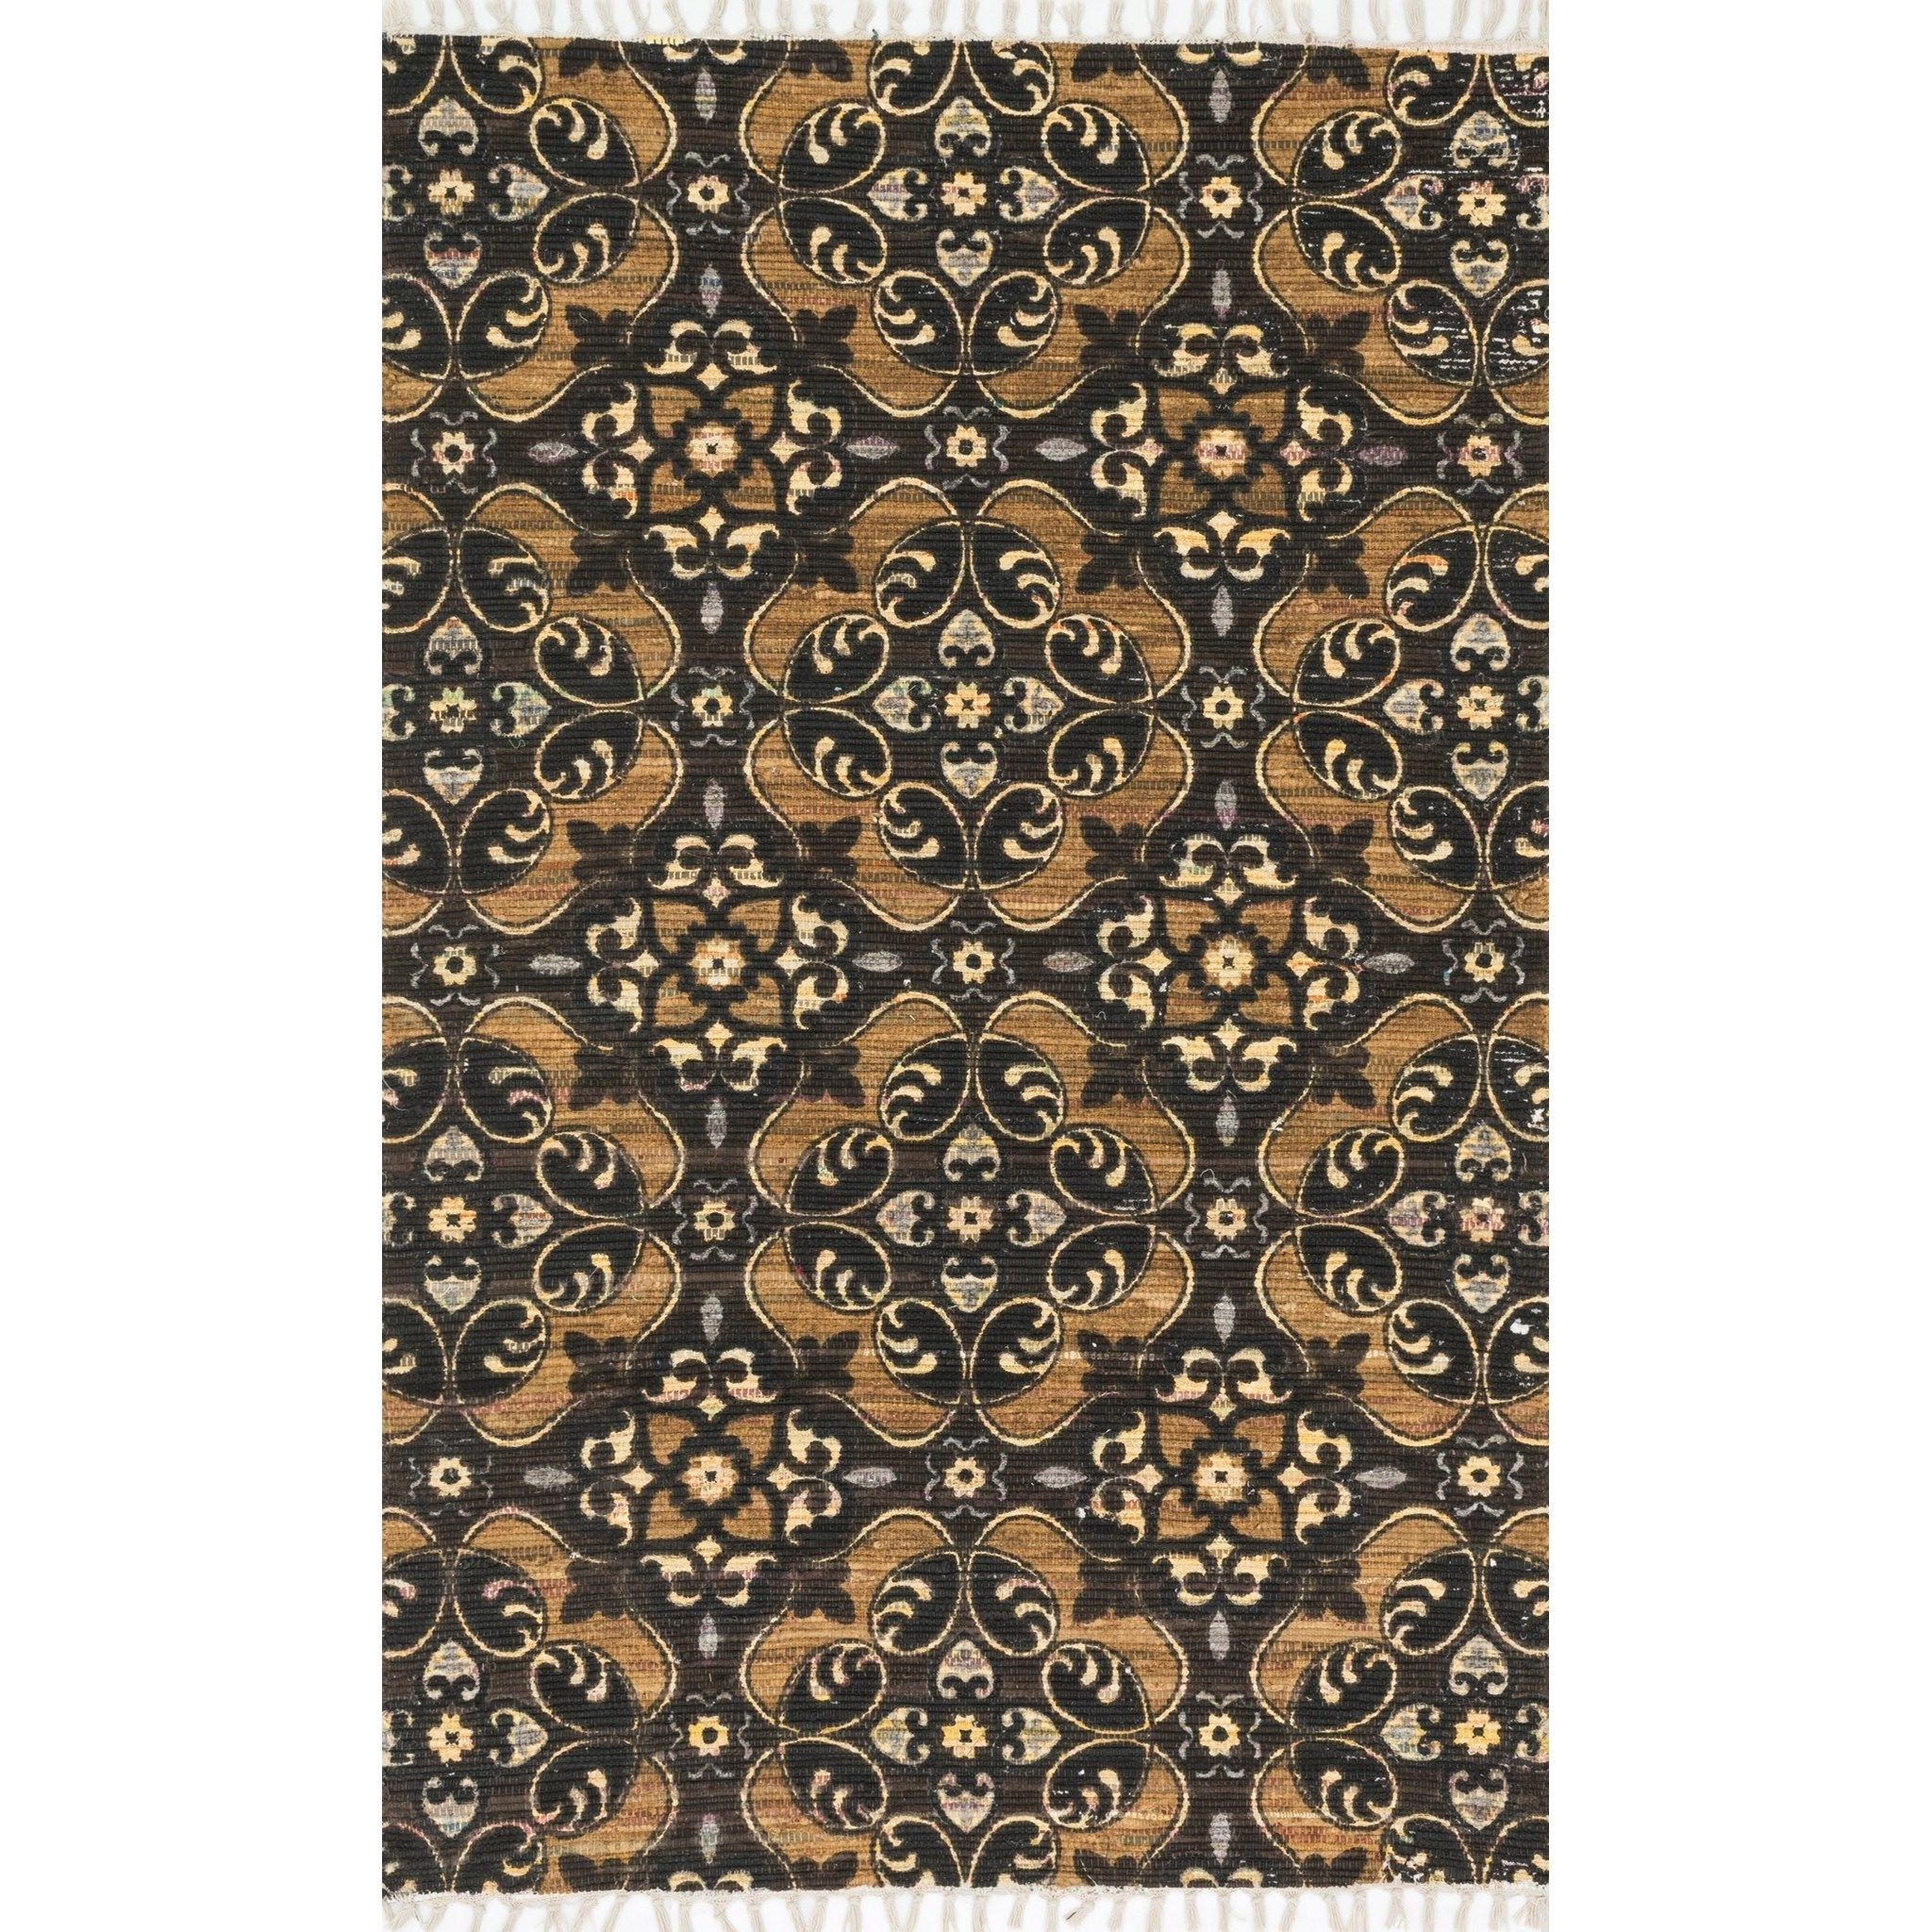 "Aria 1'-8"" X 3' Area Rug by Loloi Rugs at Virginia Furniture Market"